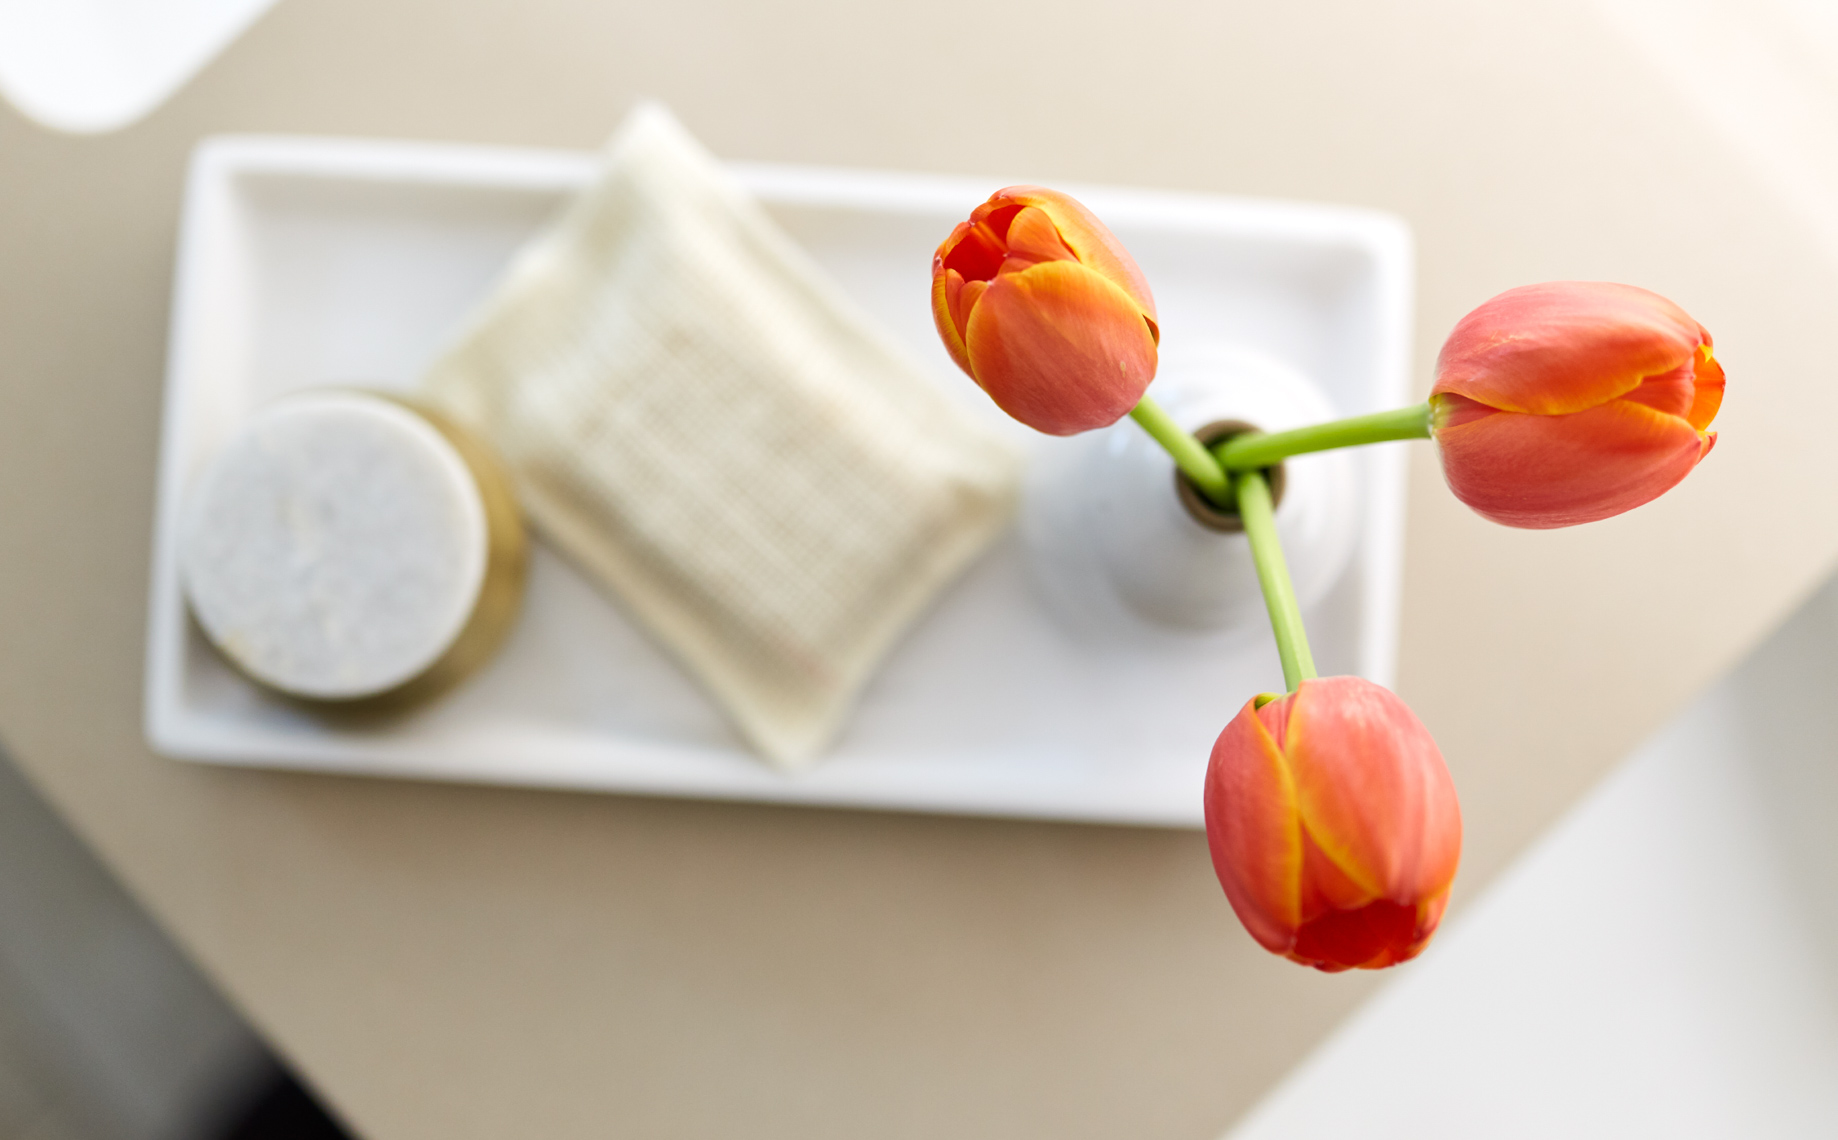 Orange tulips in Hotel bathroom on white tray shot for Senza Hotel and Spa in Napa California San Francisco lifestyle photographer